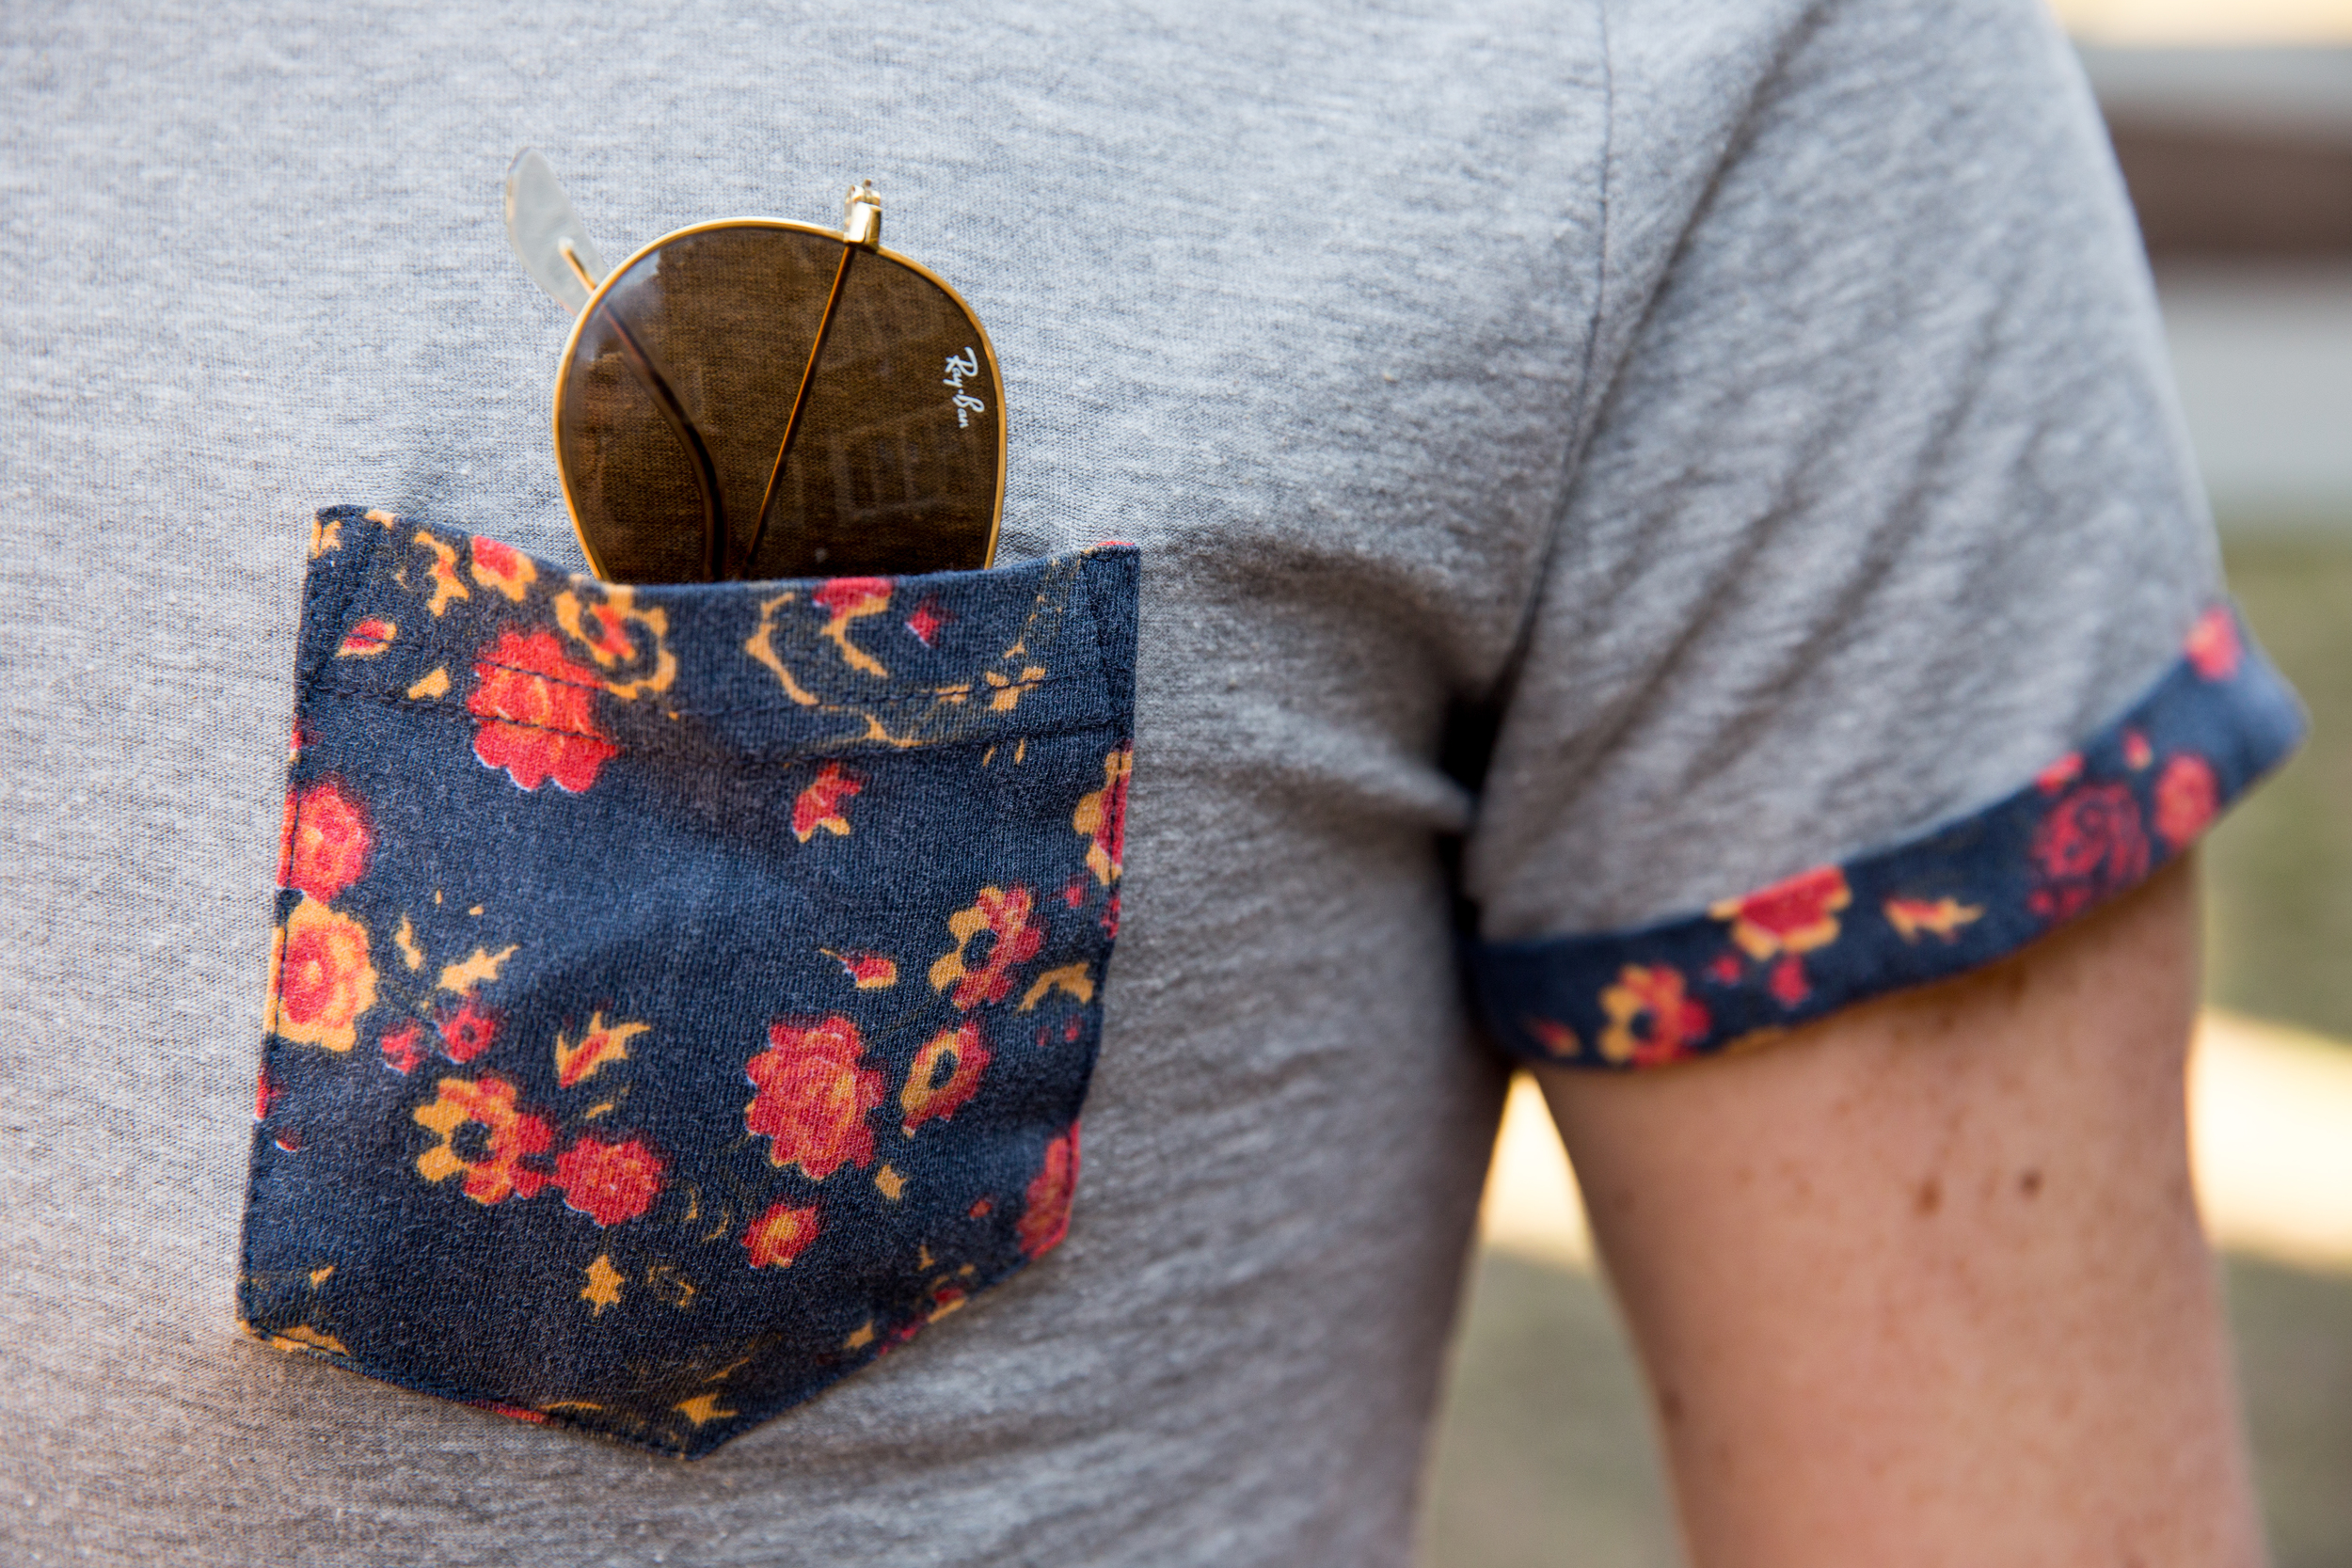 Cameron | Duke University  Floral Accent Pocket Tee  Dark Denim  Frank & Oak Bag  Rayban Sunglasses  Brown Boots